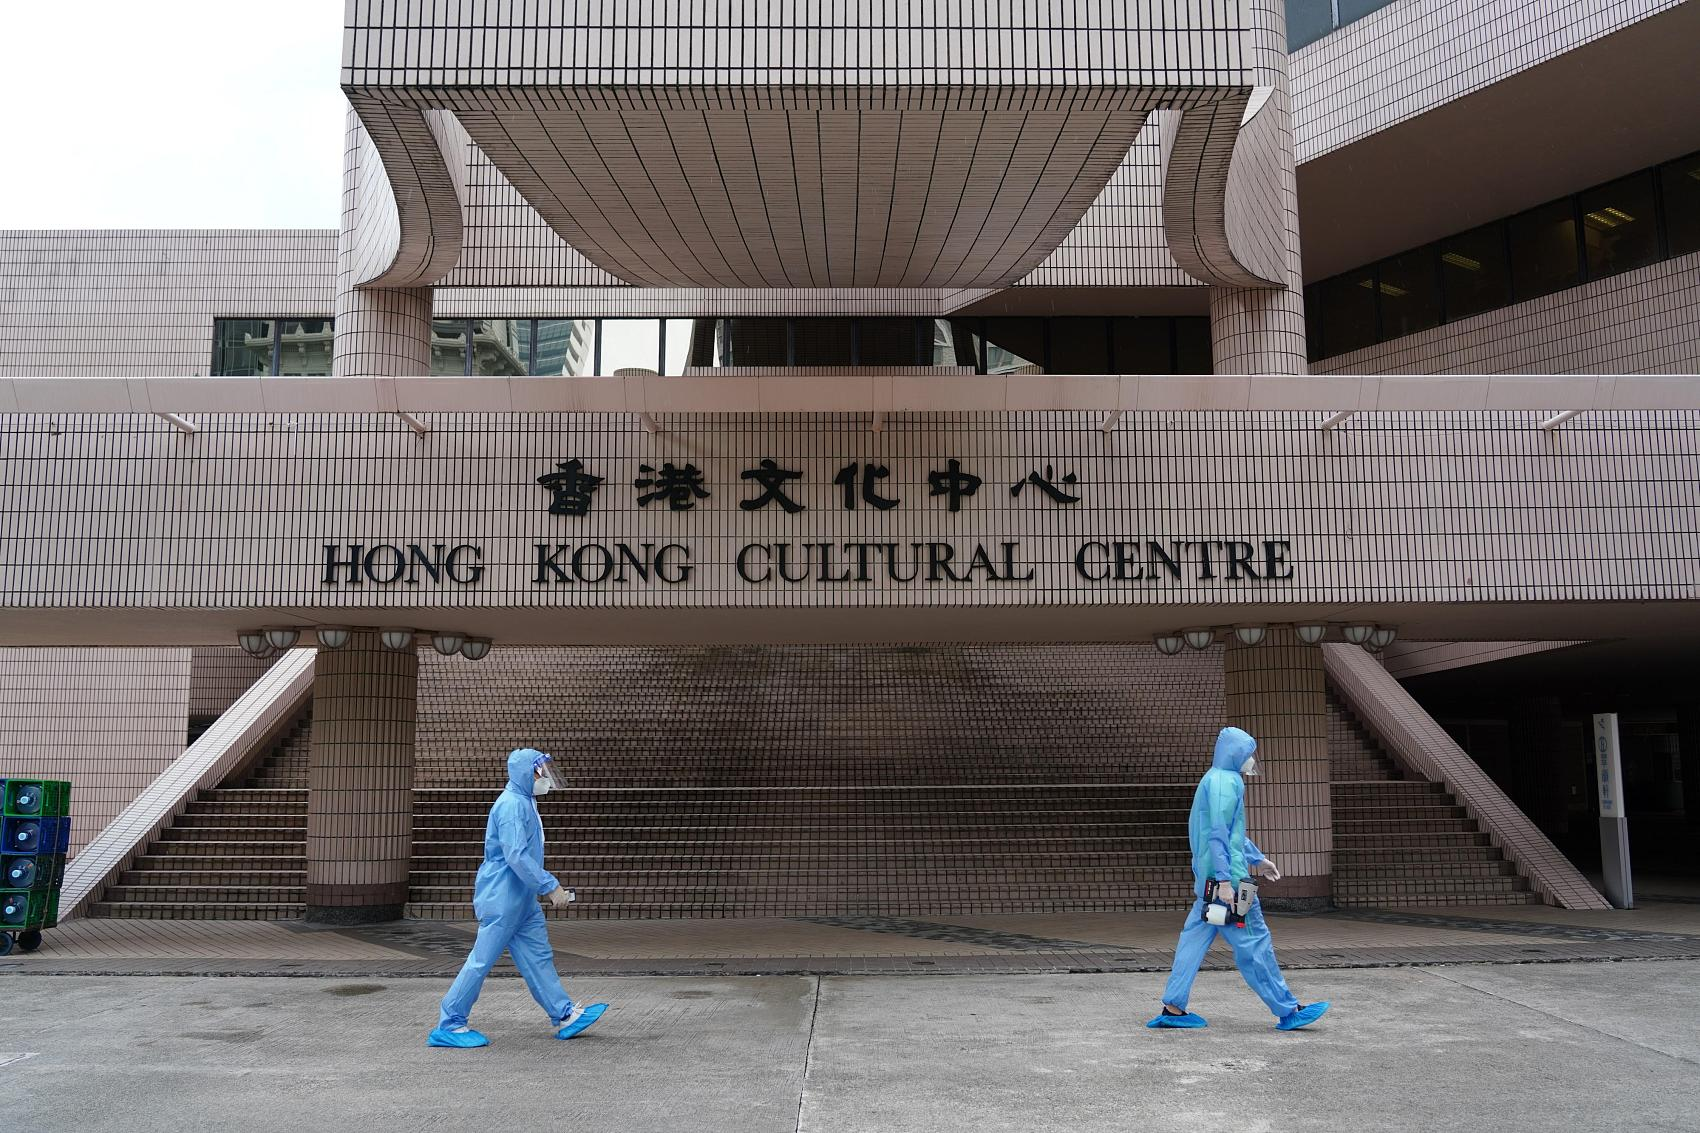 HK sees zero increase in COVID-19 cases, HK Phil musician preliminary positive